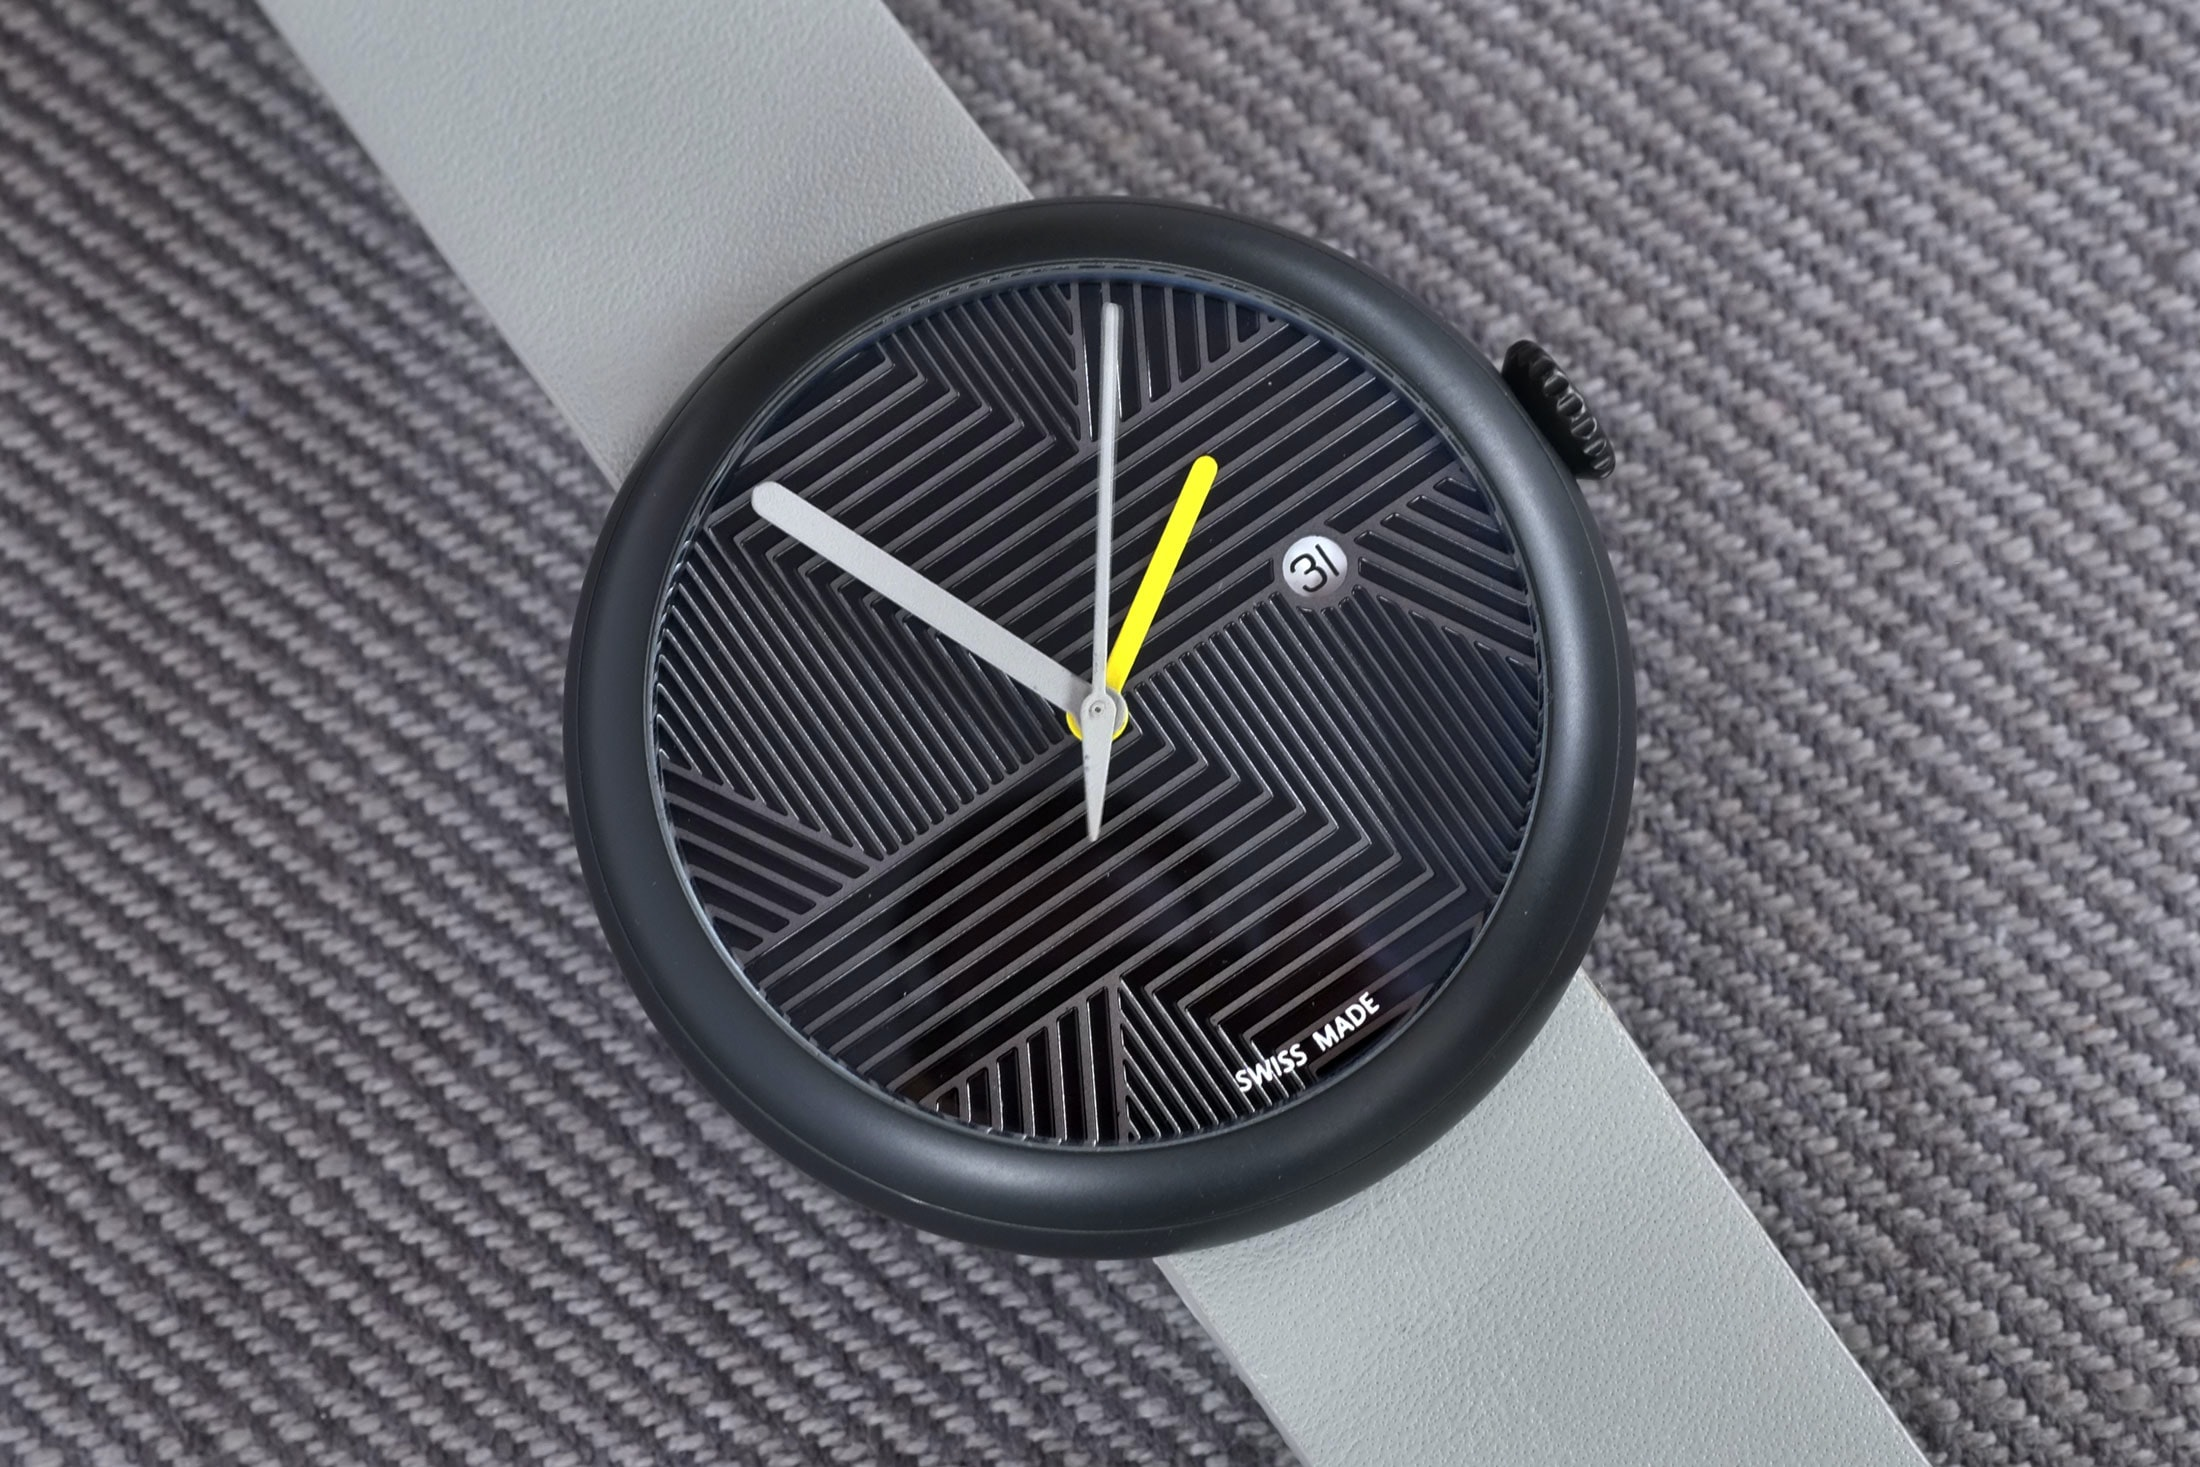 objest automatic prototype Hands-On: The Objest Hach Automatic, An Affordable And Customizable Watch For Design Lovers Hands-On: The Objest Hach Automatic, An Affordable And Customizable Watch For Design Lovers objest 09